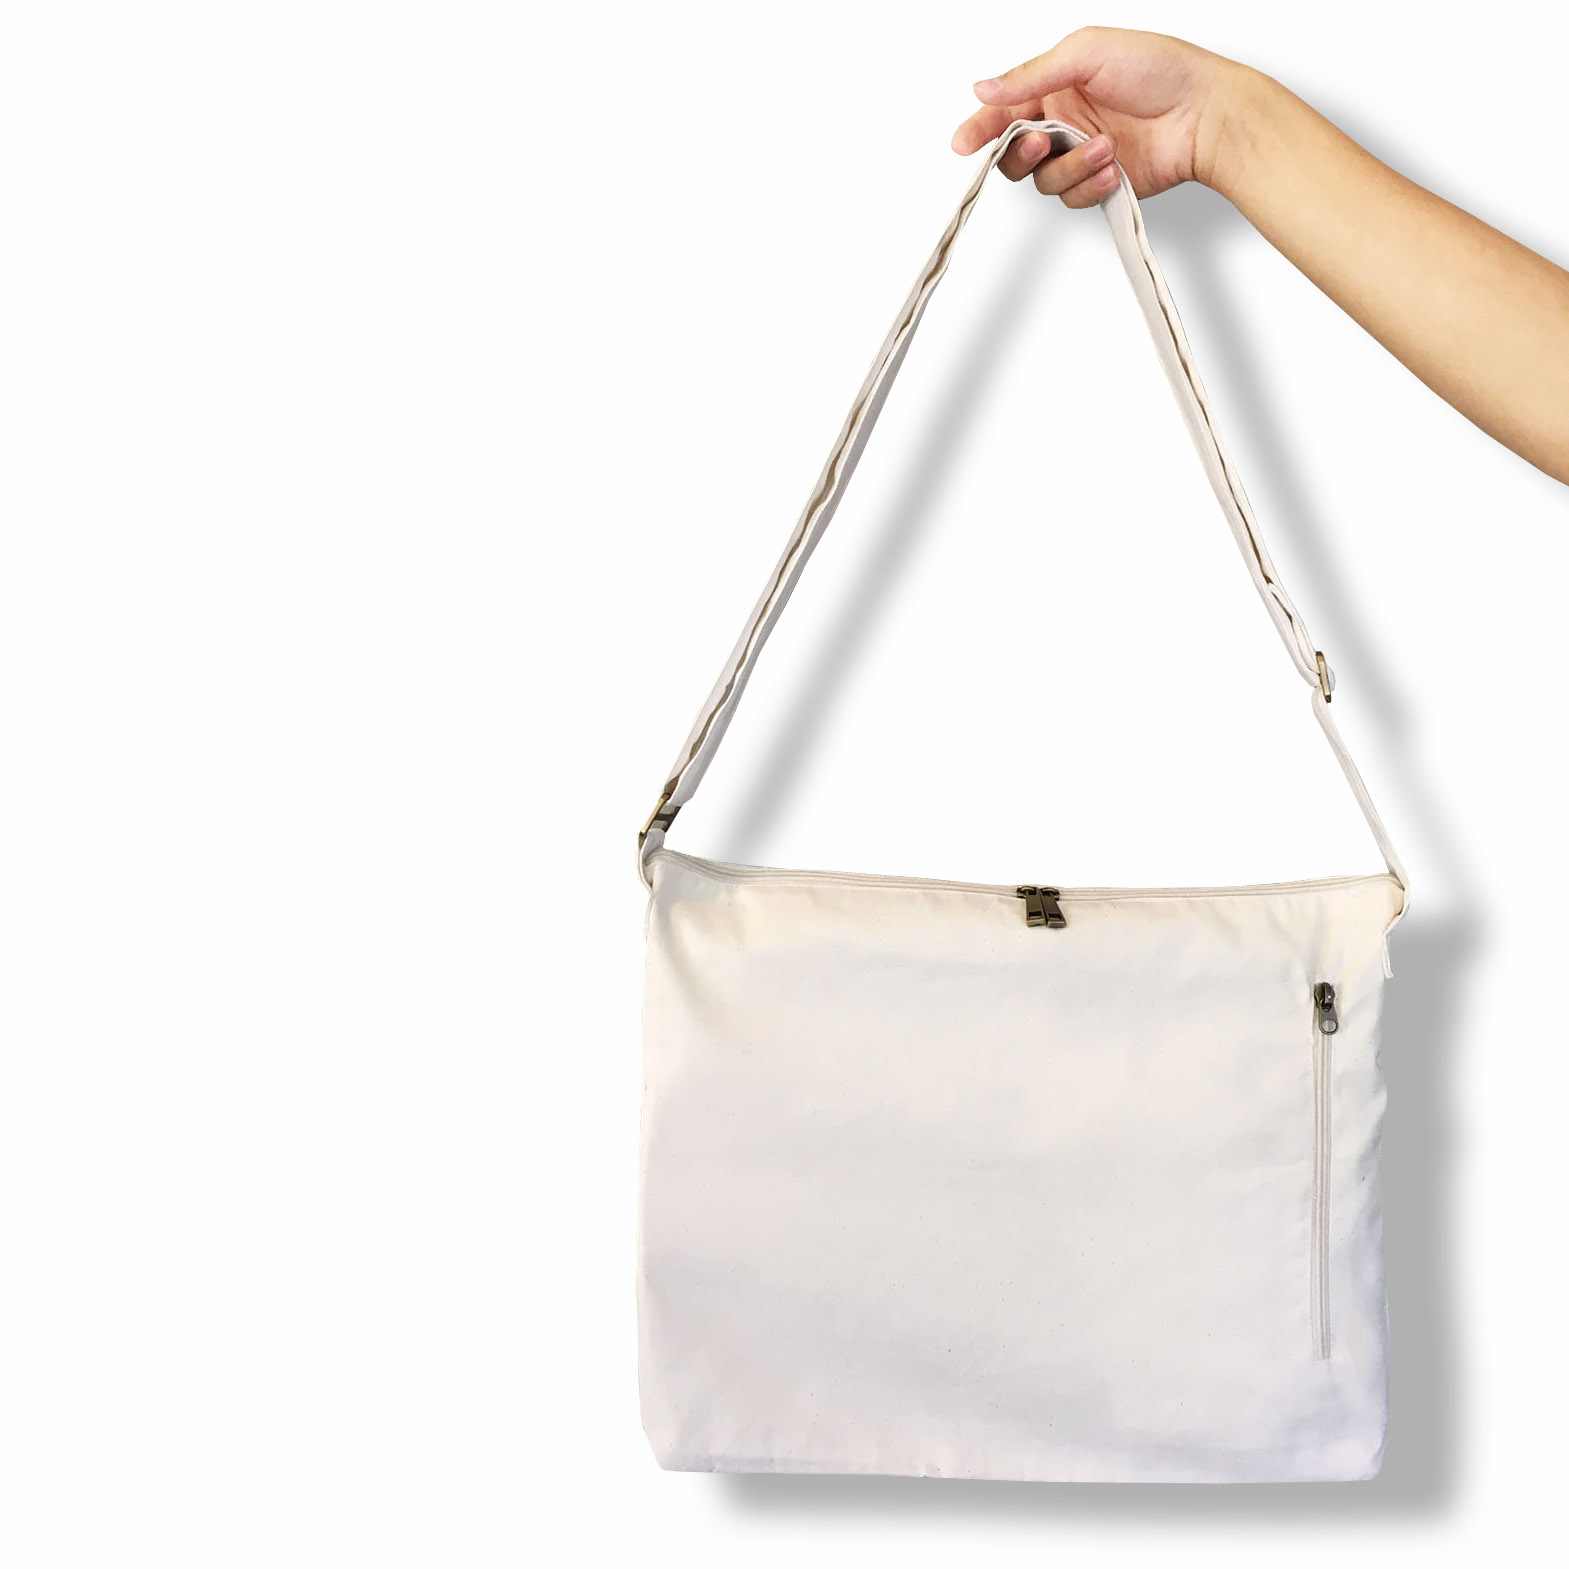 Durable zippered canvas shoulder bag